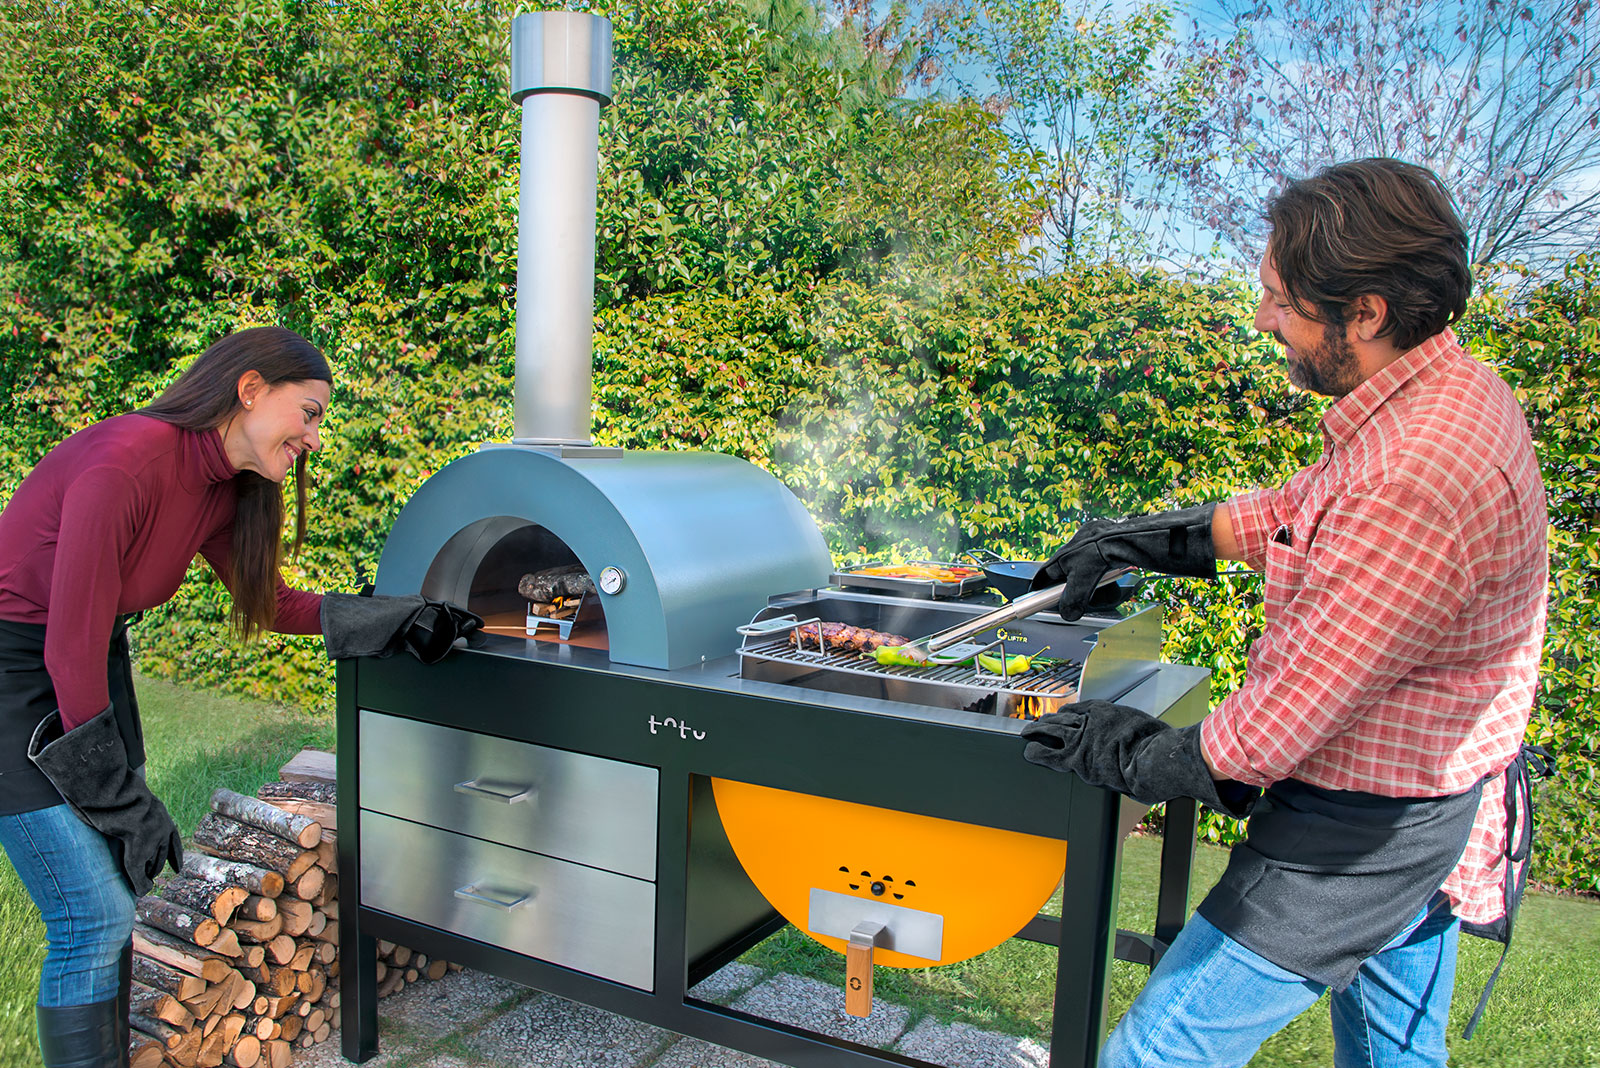 multicooking-grill-oven-toto-made-italy.jpg